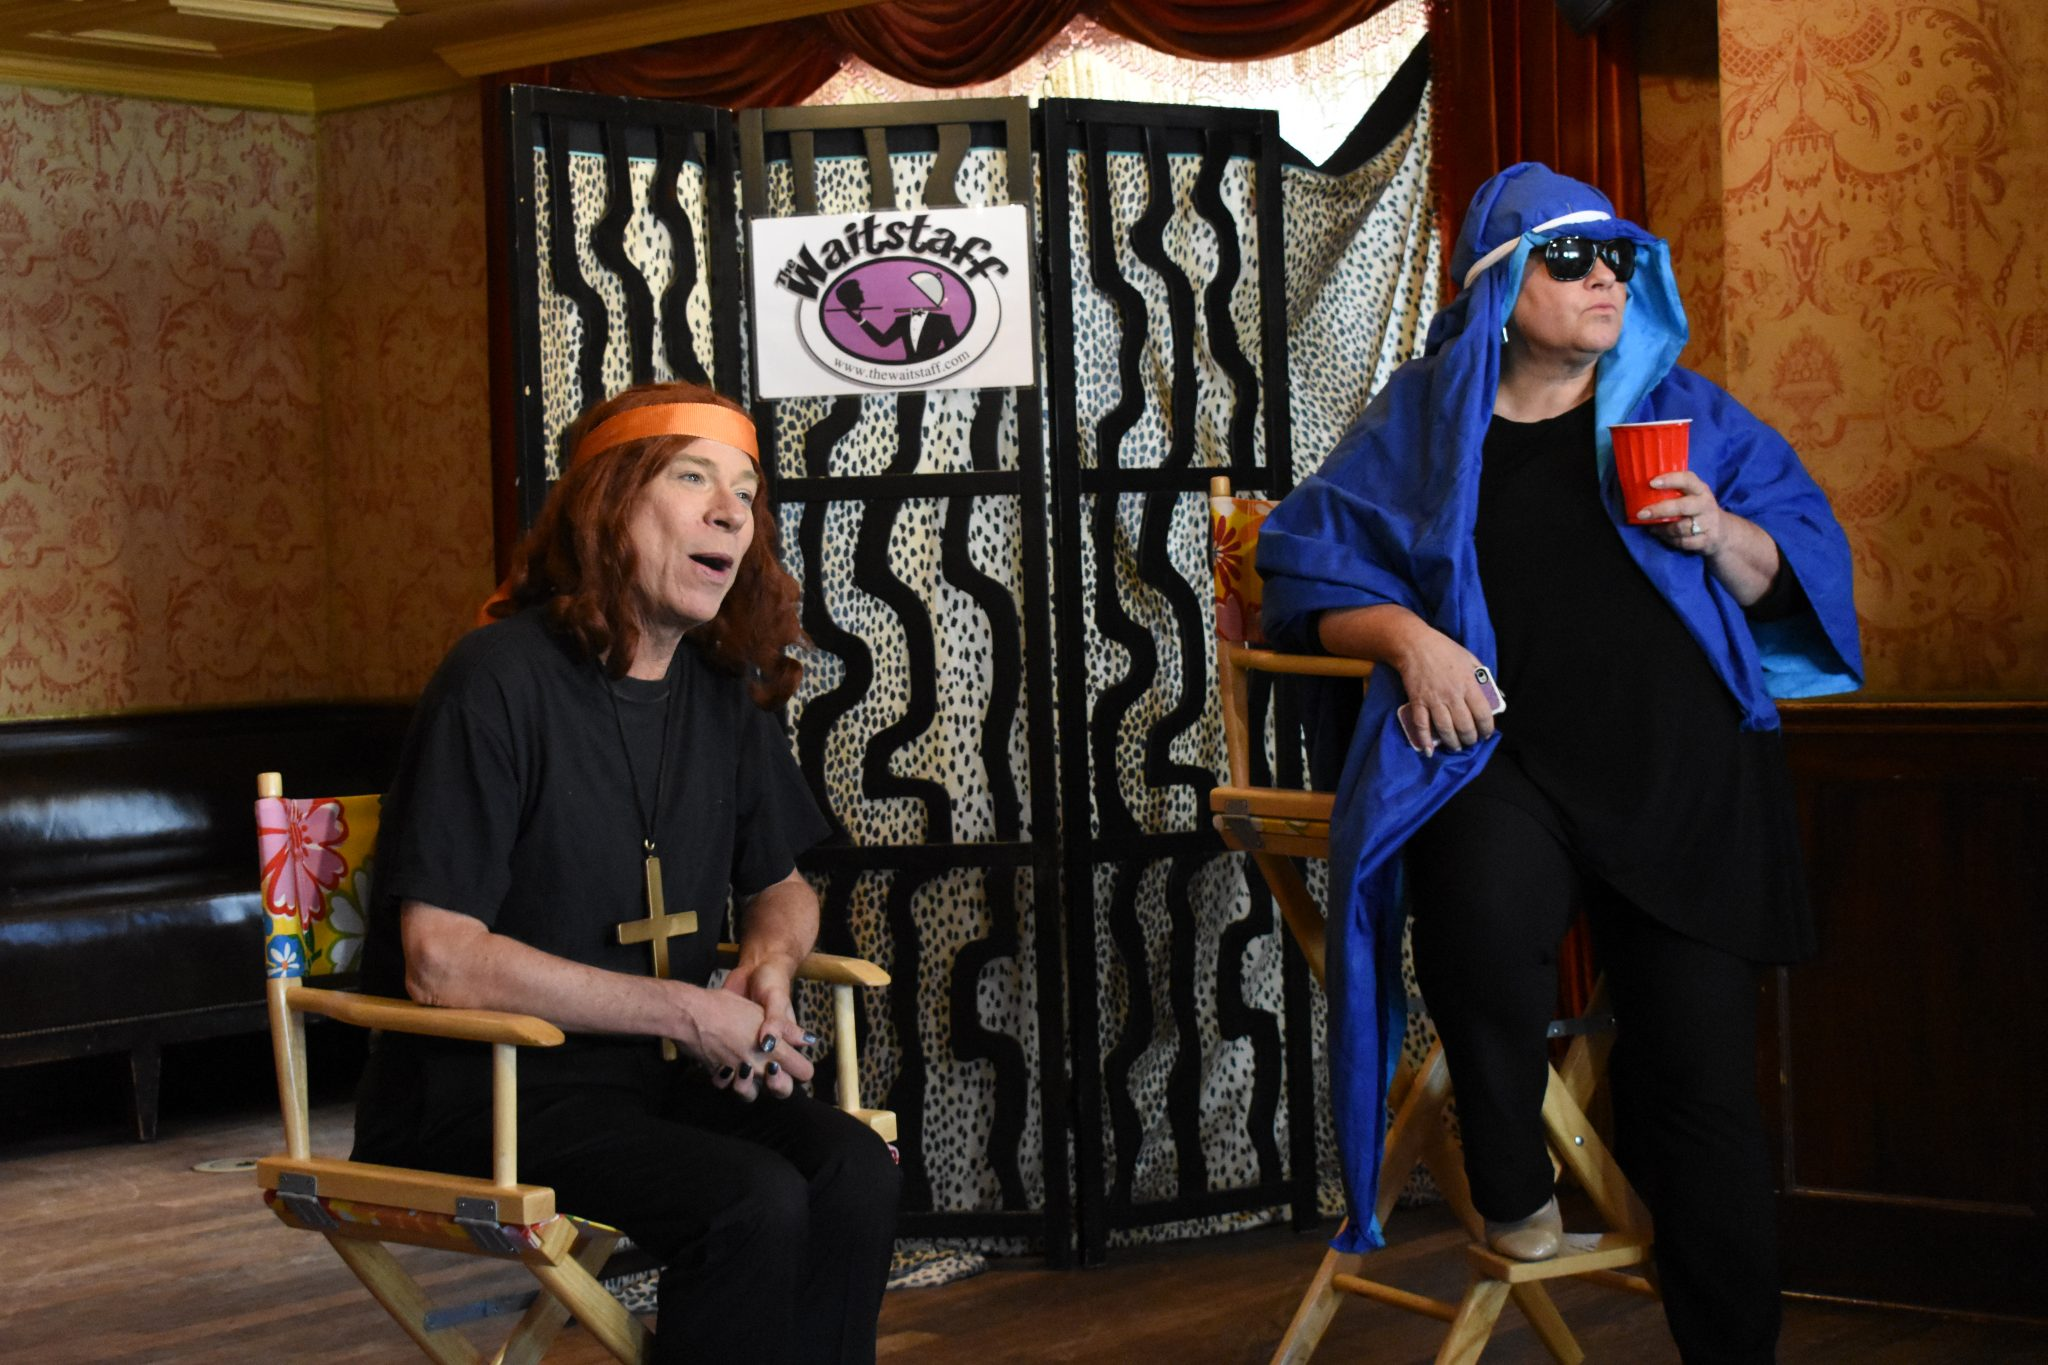 WaitStaff Sketch Comedy returns to FringeArts Festival - South Philly Review